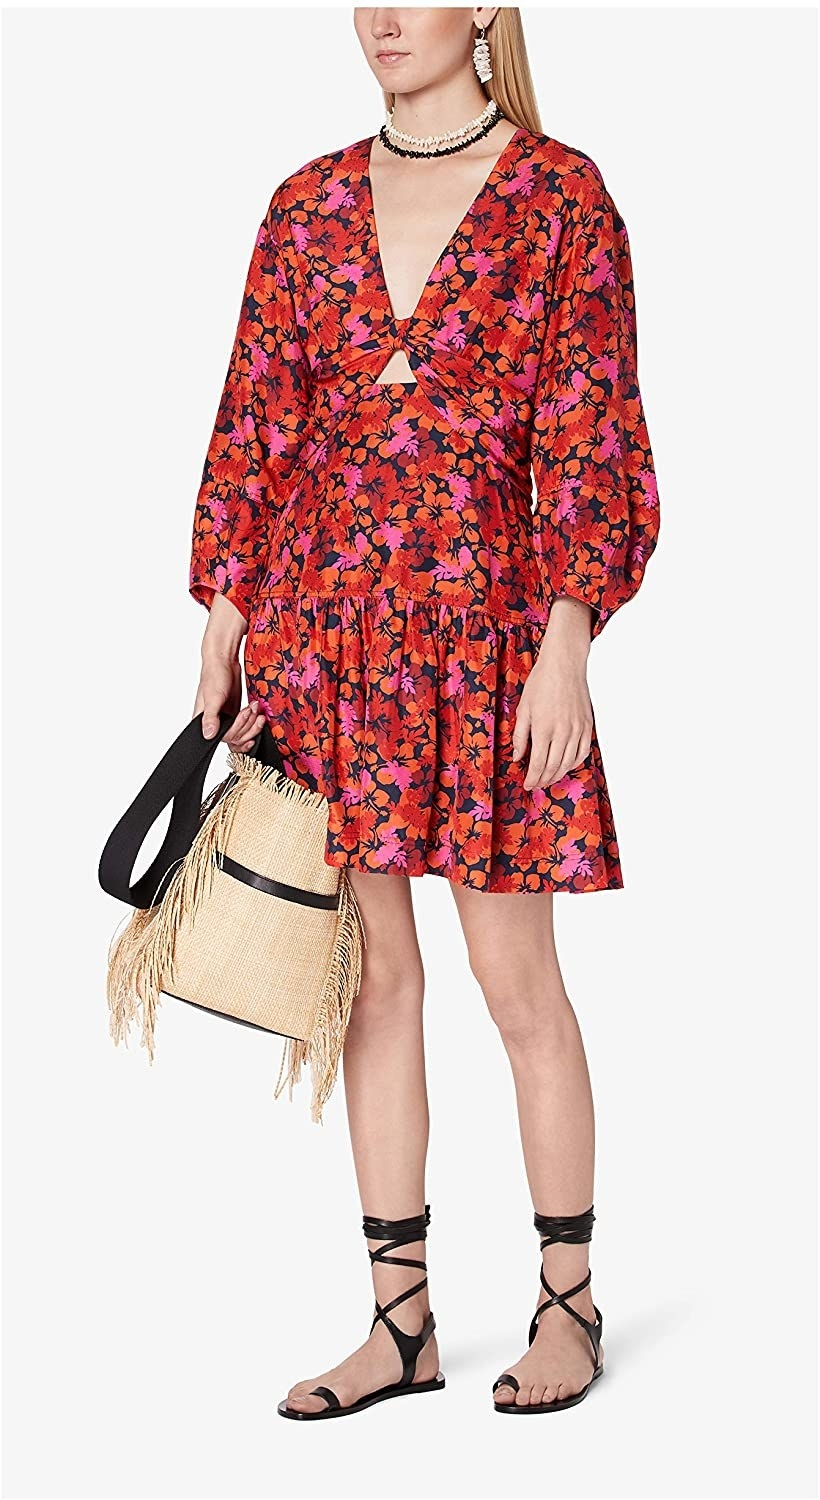 A model standing against a white background wearing the Derek Lam 10 Crosby Talia Dress in the midnight print while holding a woven straw tote and lace-up black sandals.